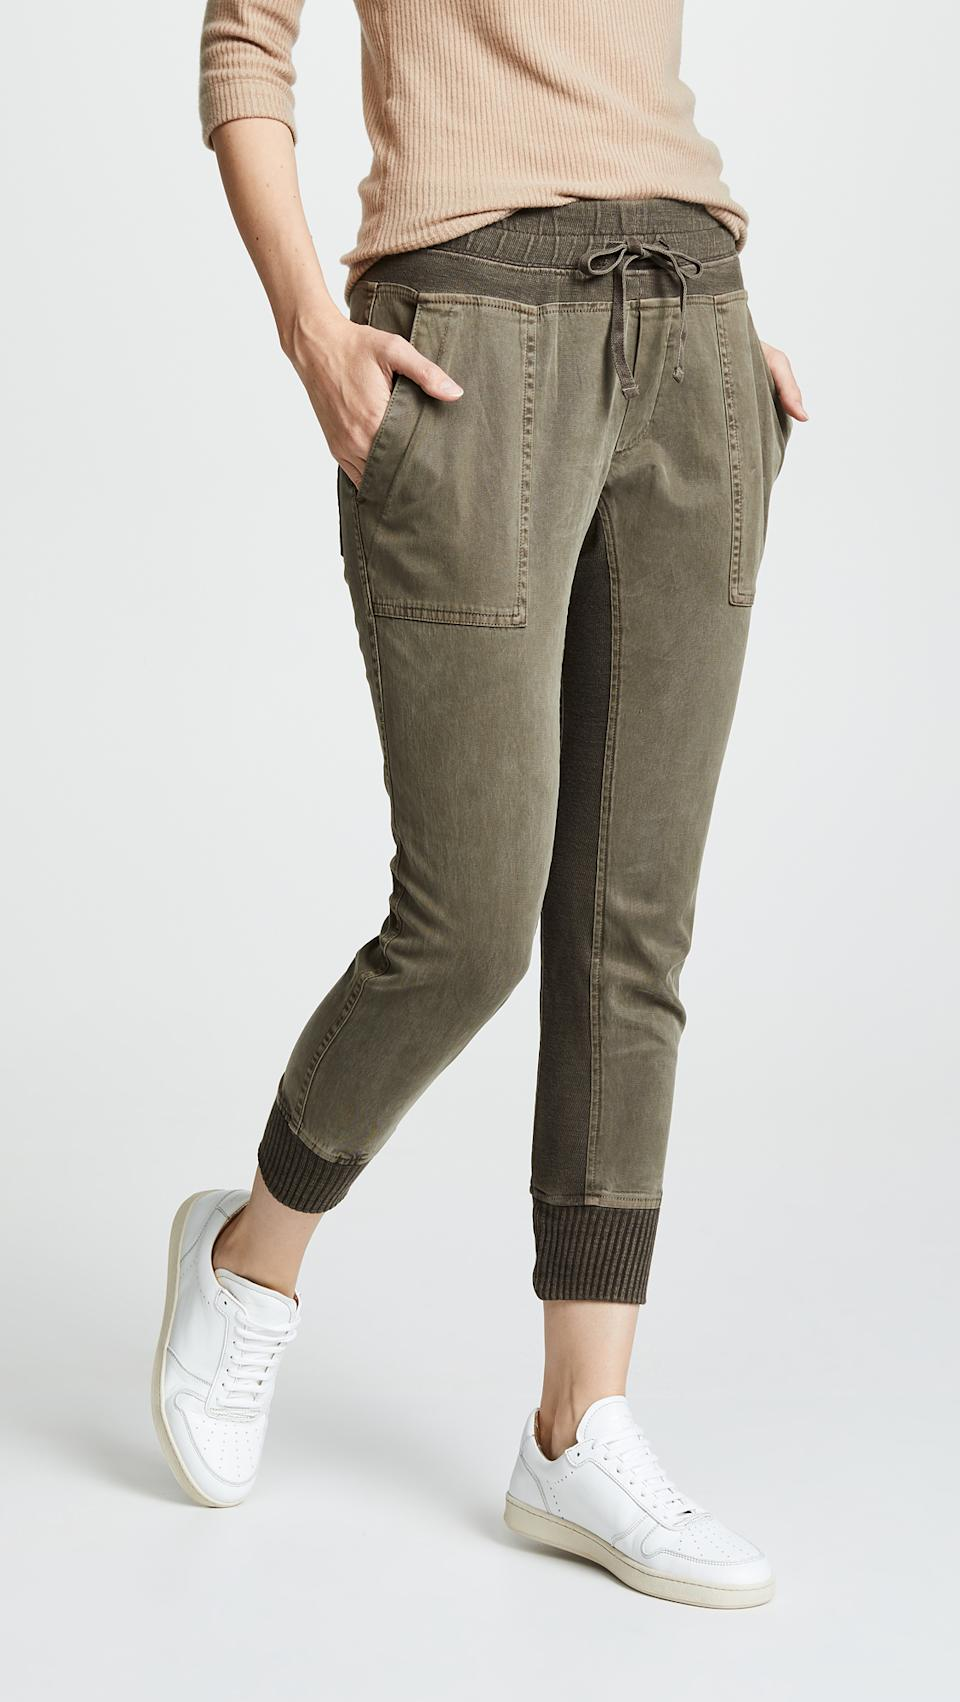 James Perse Mixed Media Pants, as seen on Meghan Markle, are on sale for Black Friday at Shopbop when you use code SHOP20 at checkout.